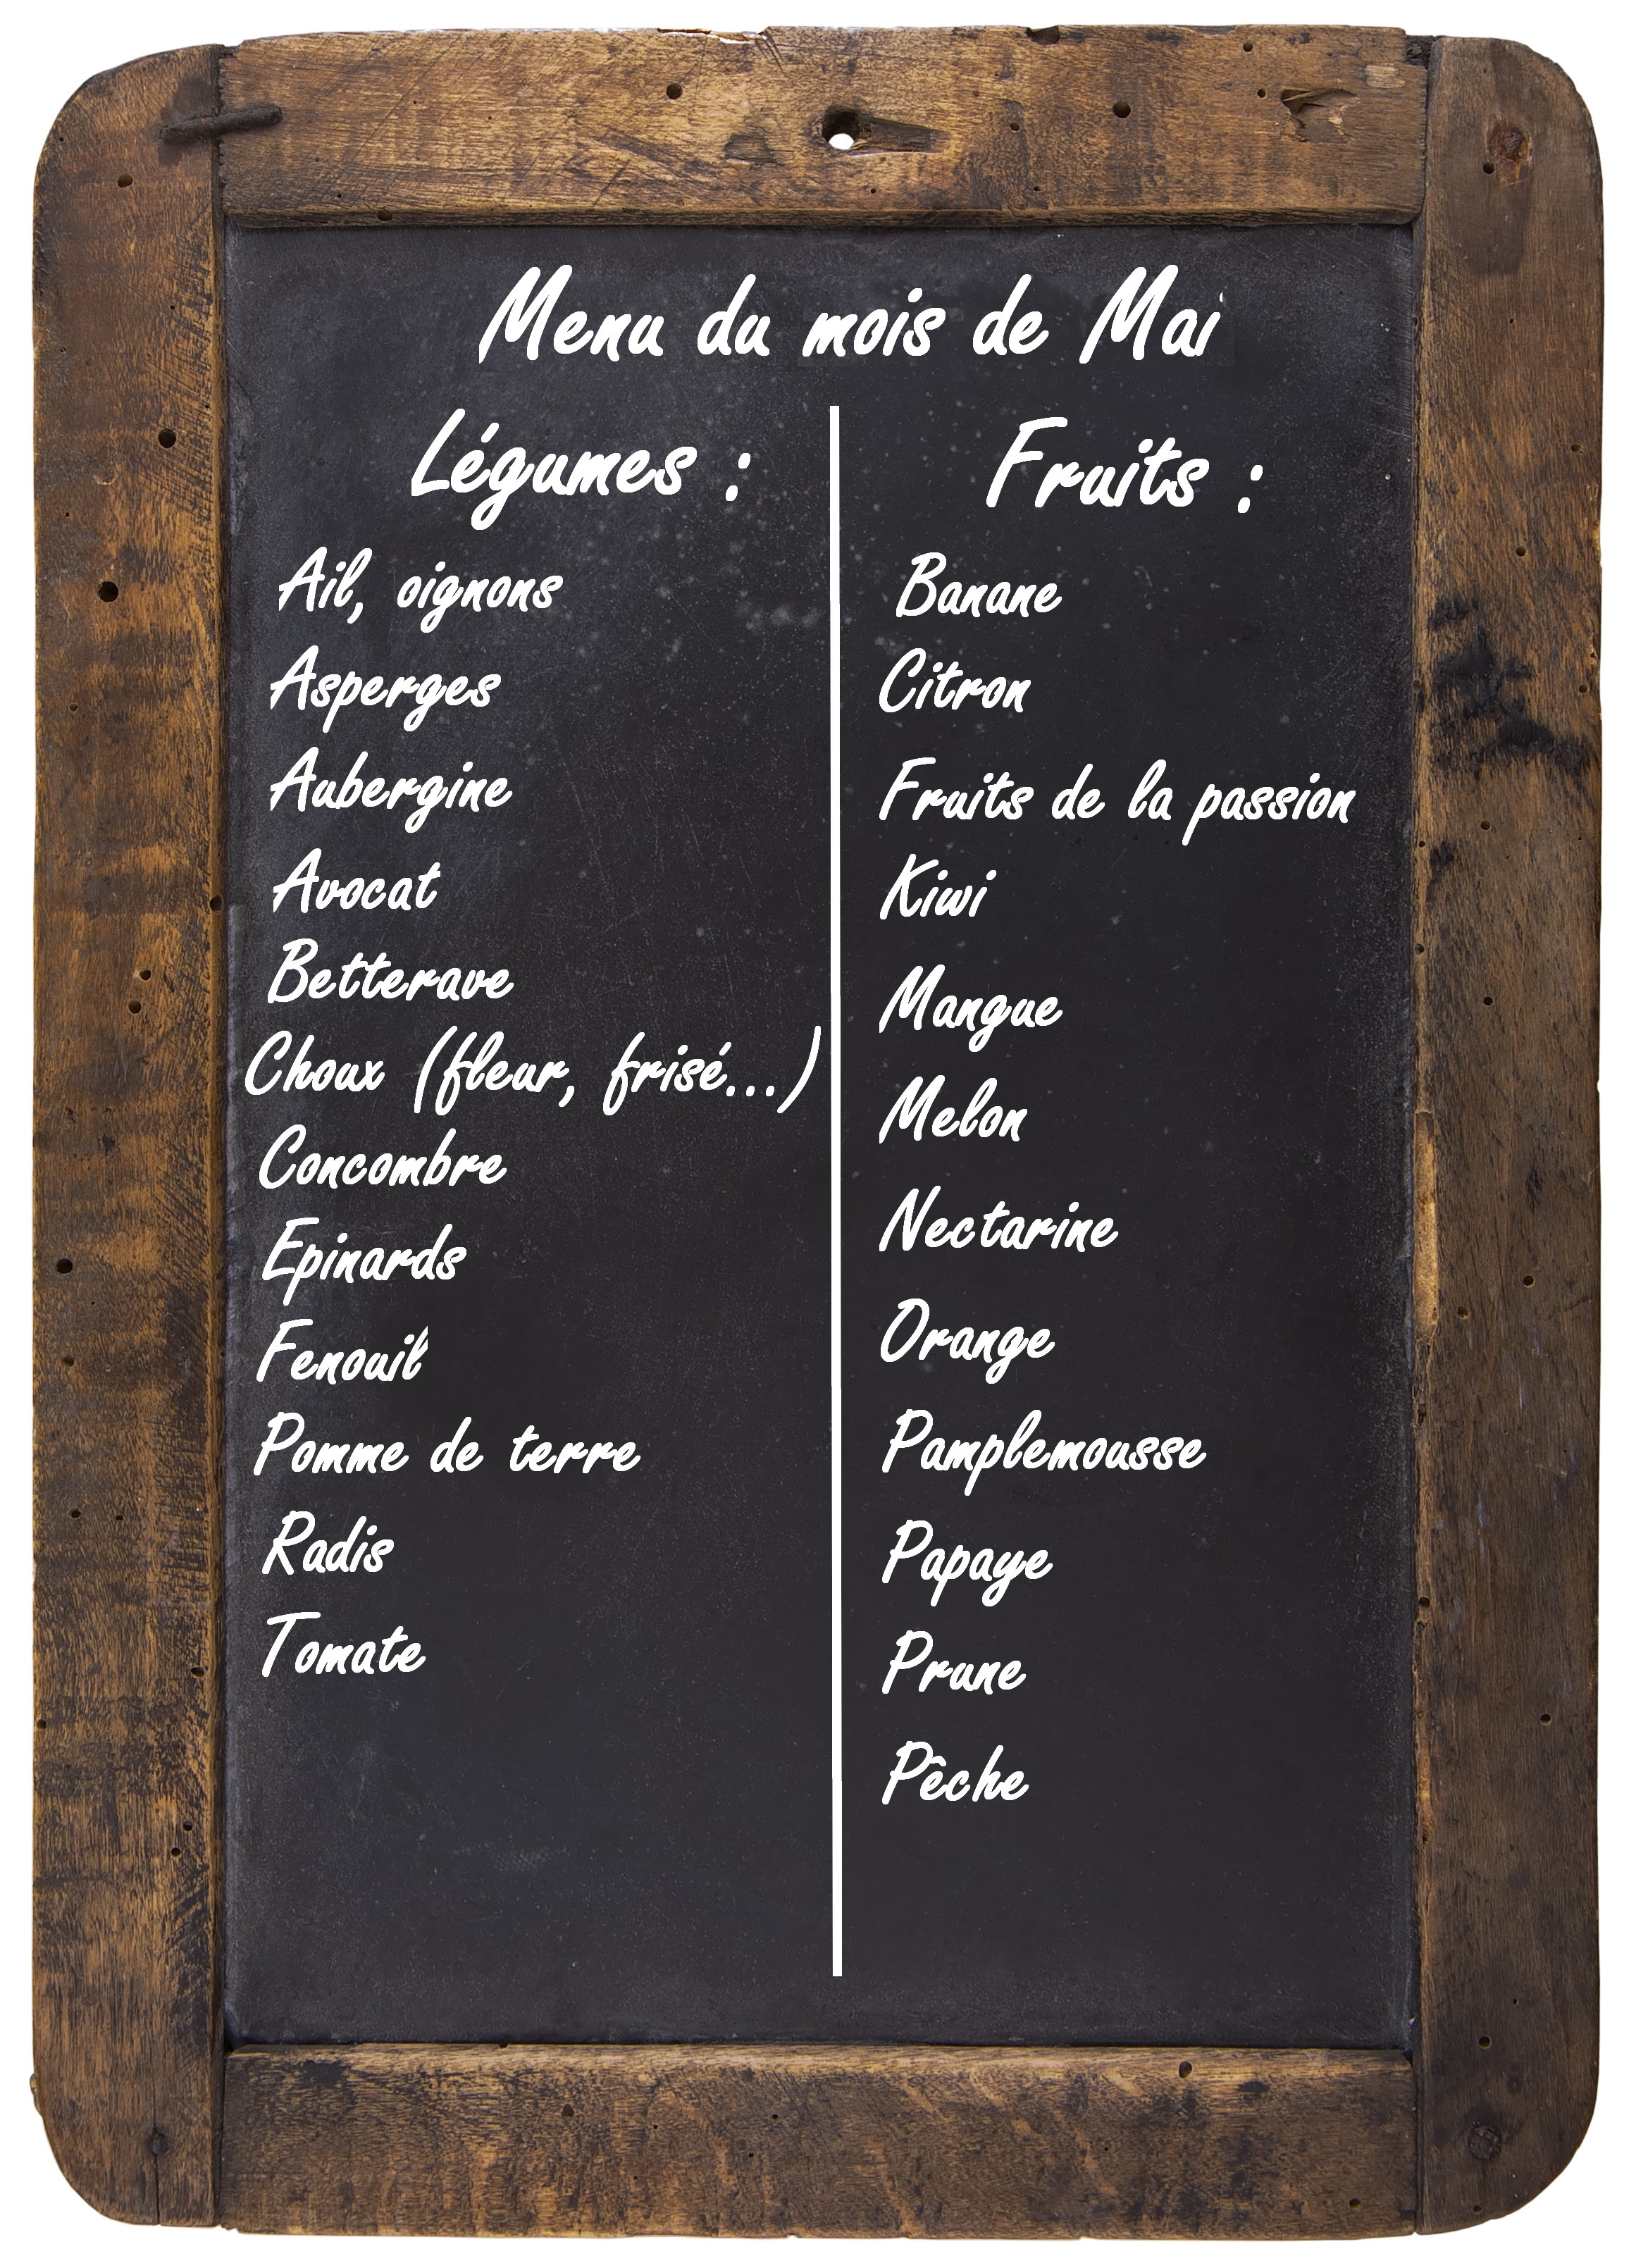 fruits_legumes_saison_mai